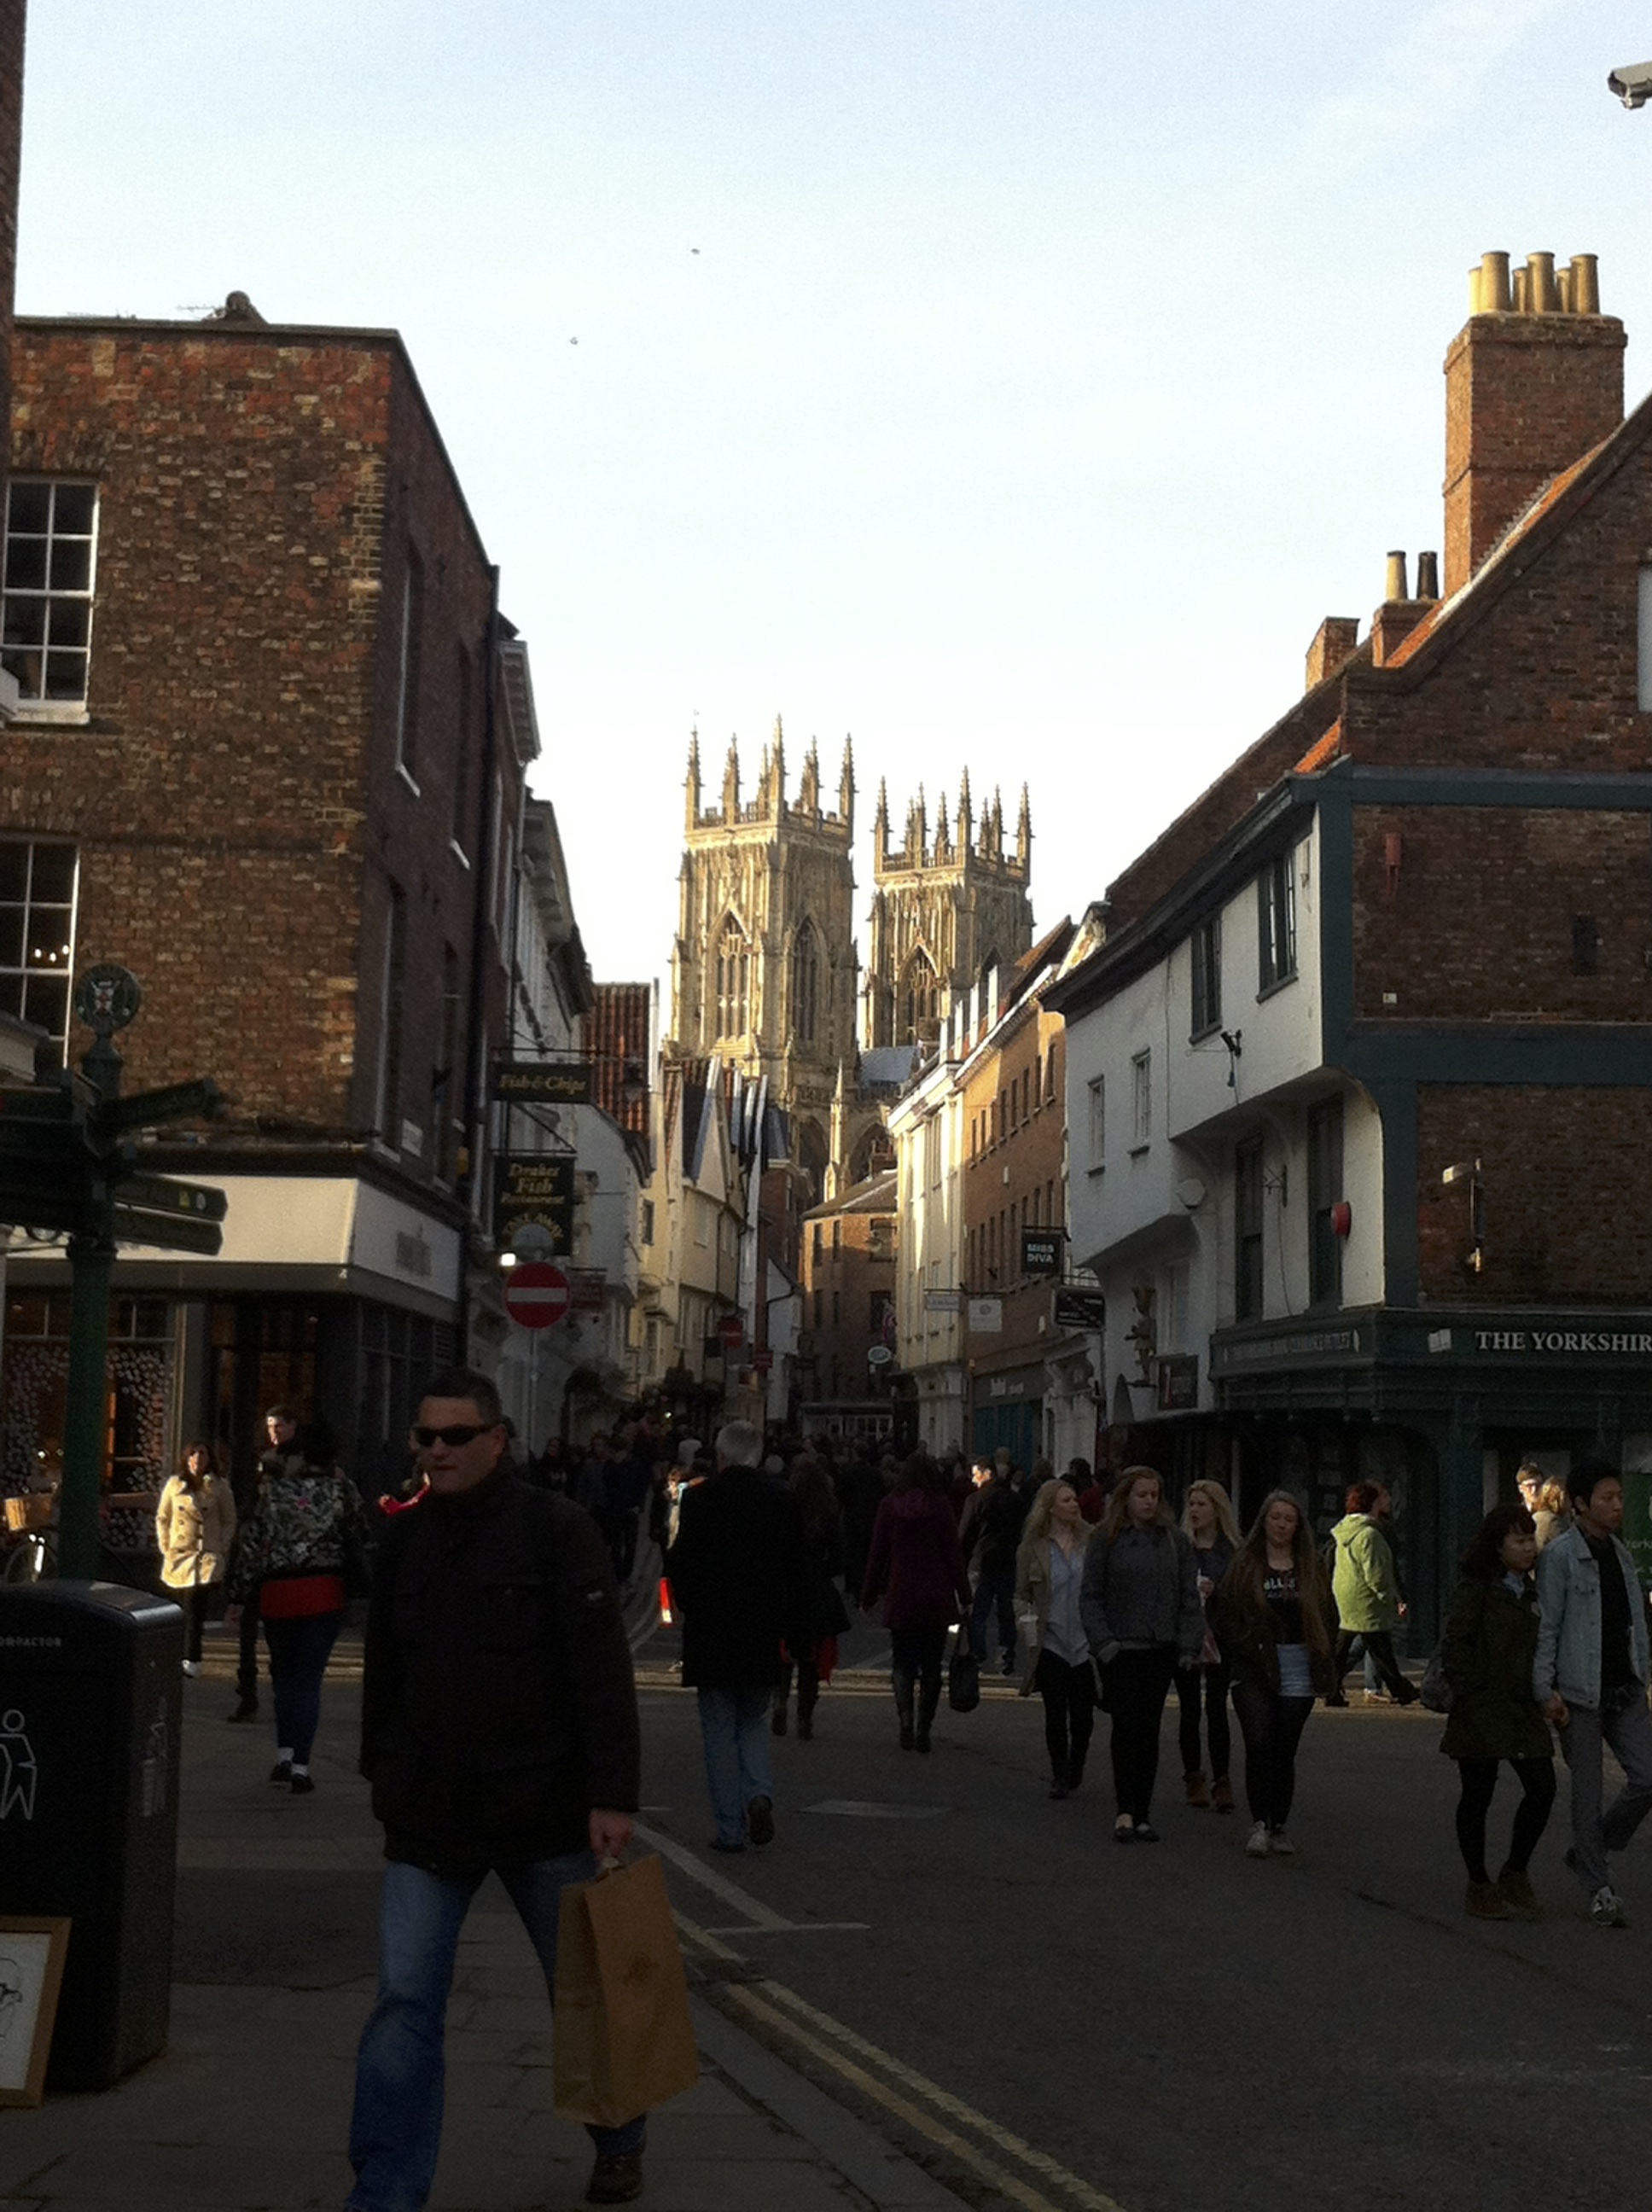 York Cathedral visible in the distance as we walk through town.